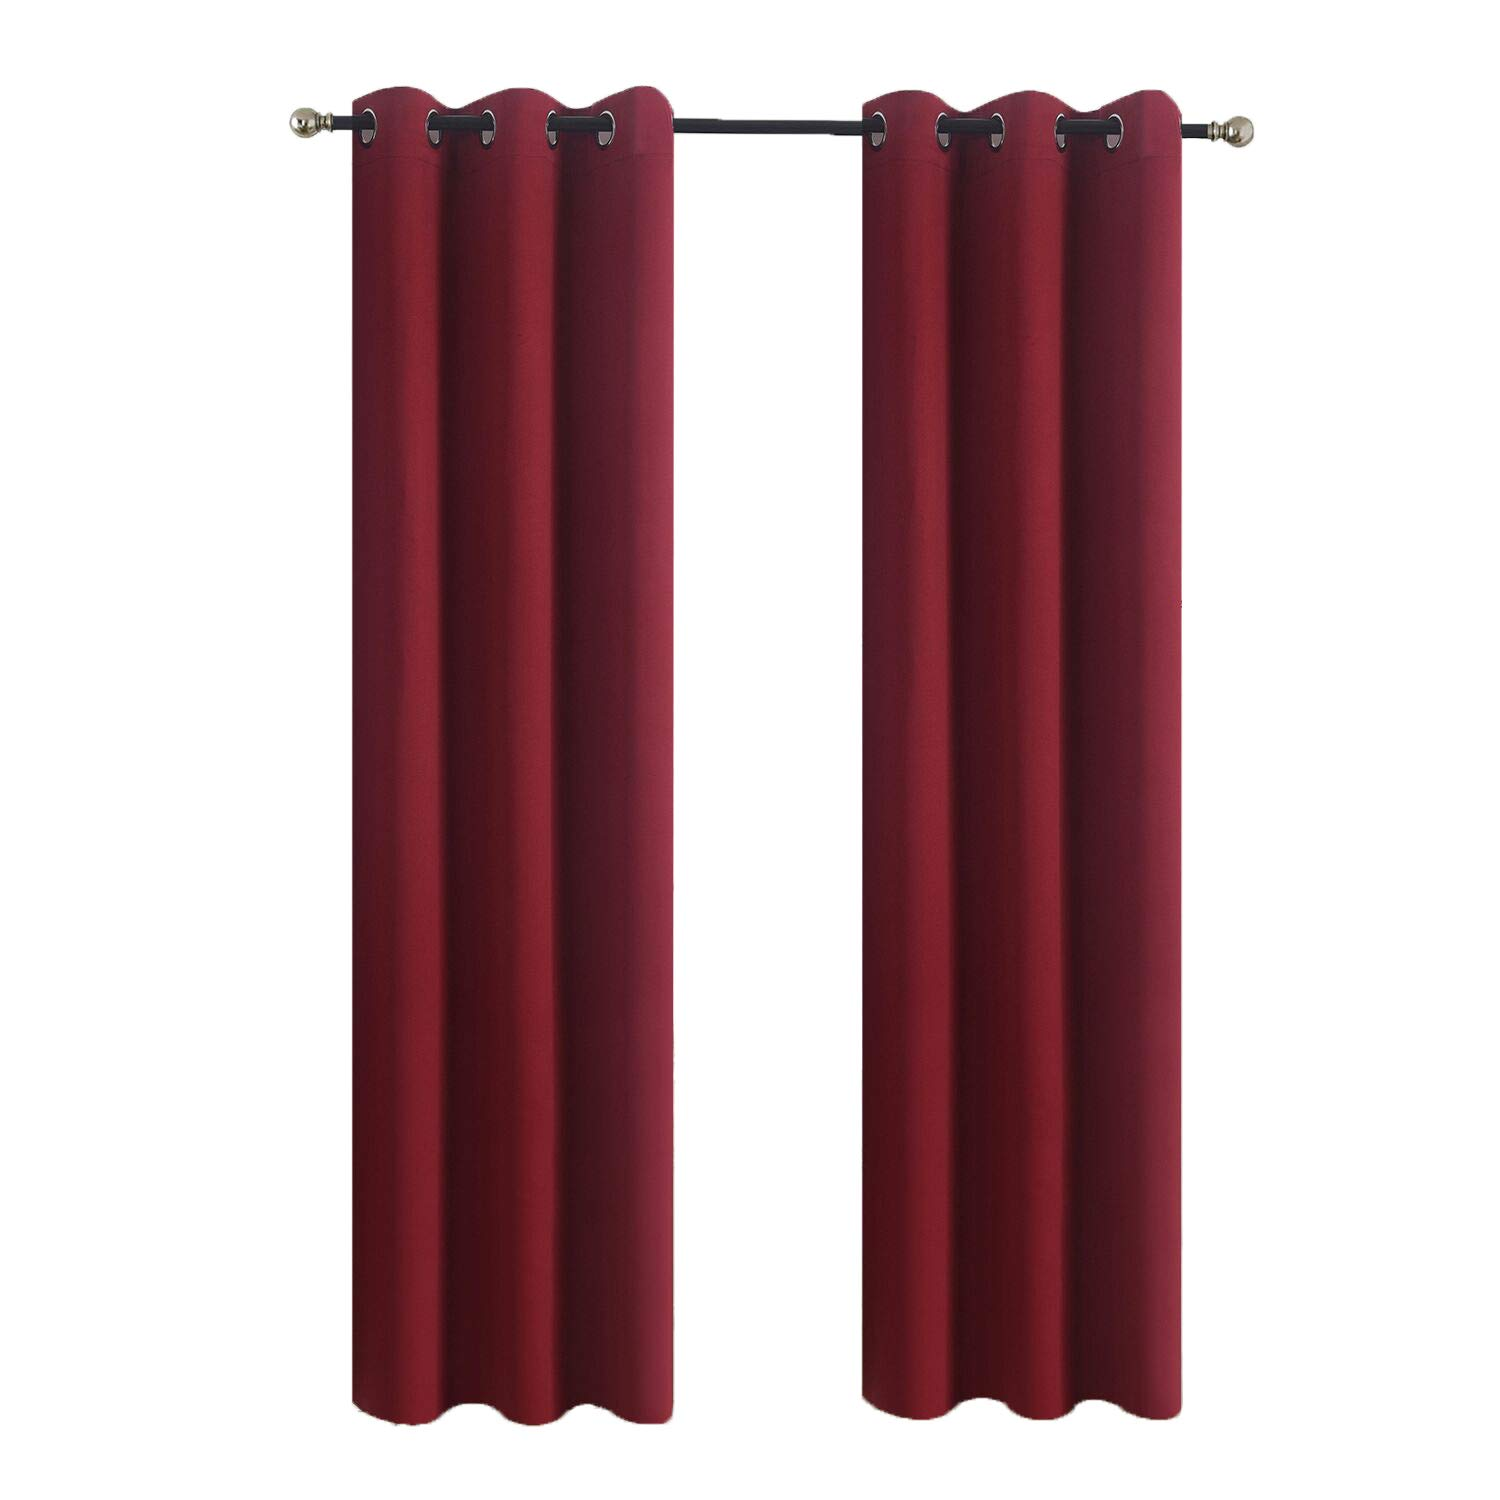 Aquazolax Kitchen Window Blackout Curtains Thermal Insulated Blackout Window Curtain Drapes 42x63 Solid Readymade for Living Room, 1 Pair, Burgundy Red